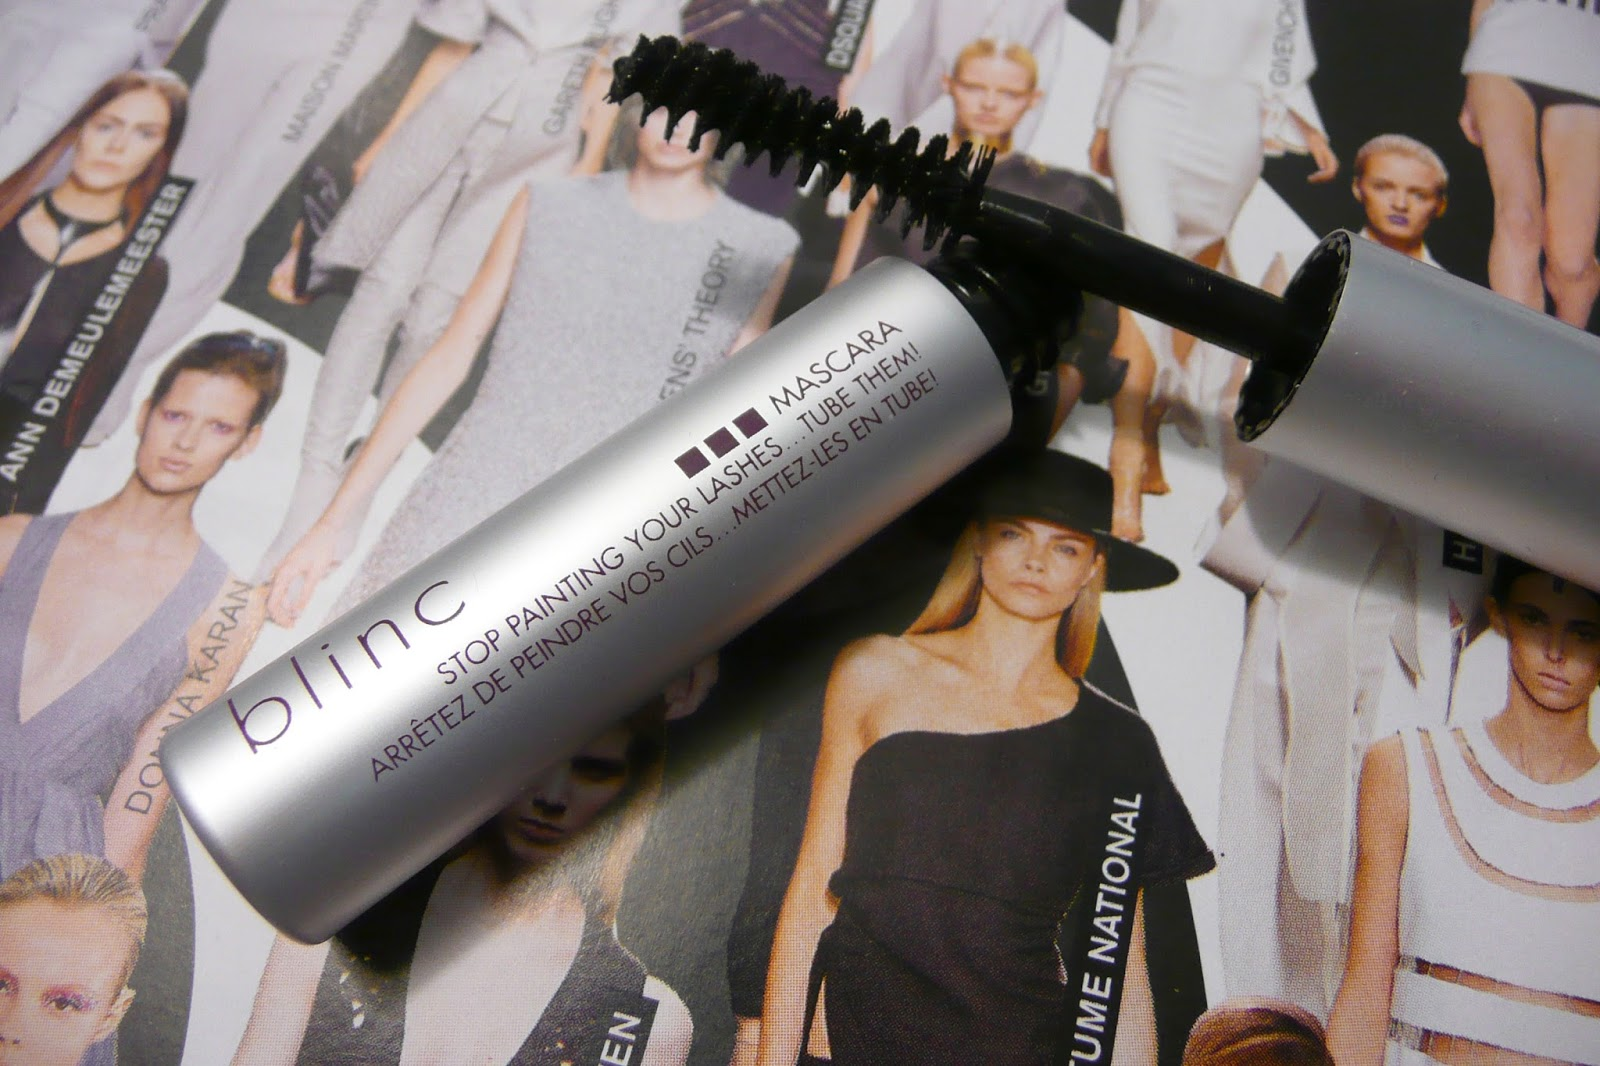 Blinc mascara review